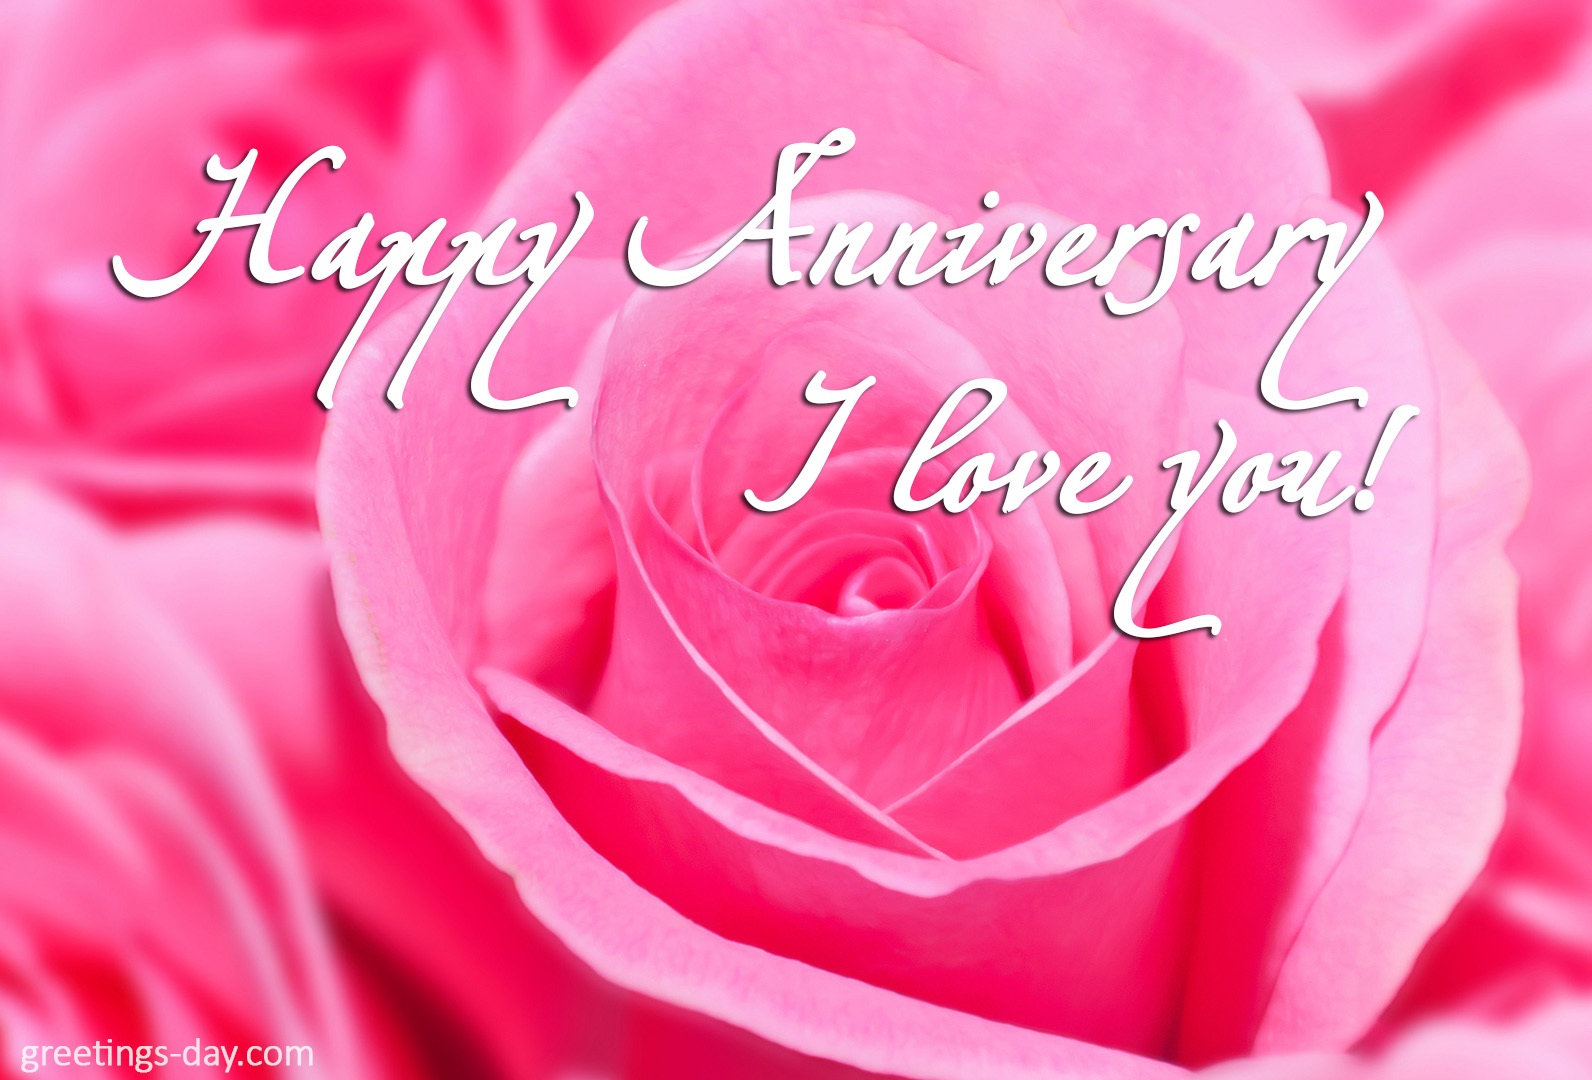 Happy Anniversary! I love you.